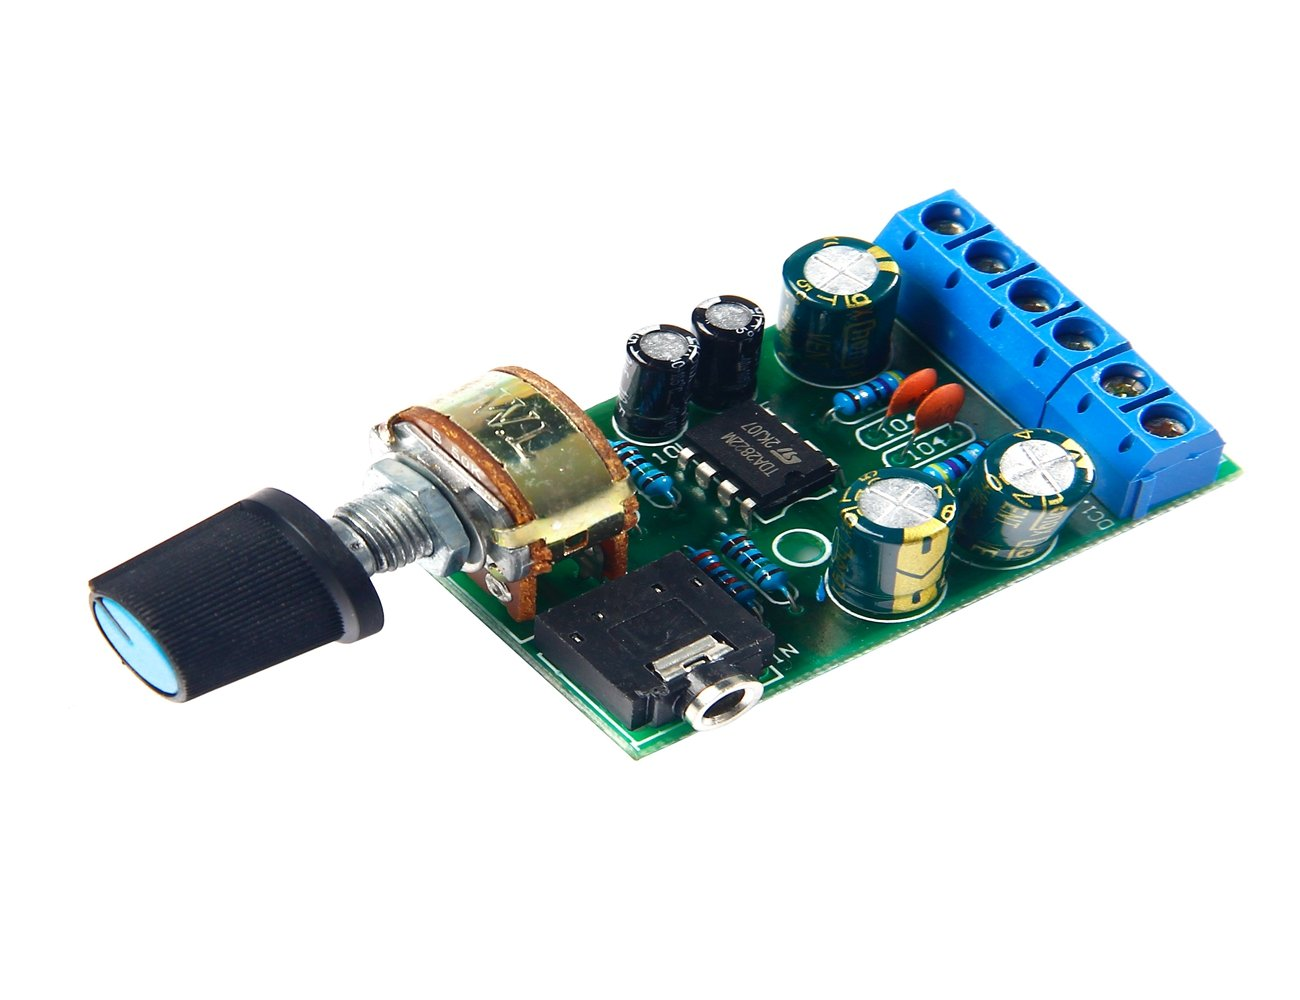 Dc18 12v Tda2822m Amplifier 20 Channel Stereo Aux Low Power Tda2822 Audio Amp Board Module Home Theater